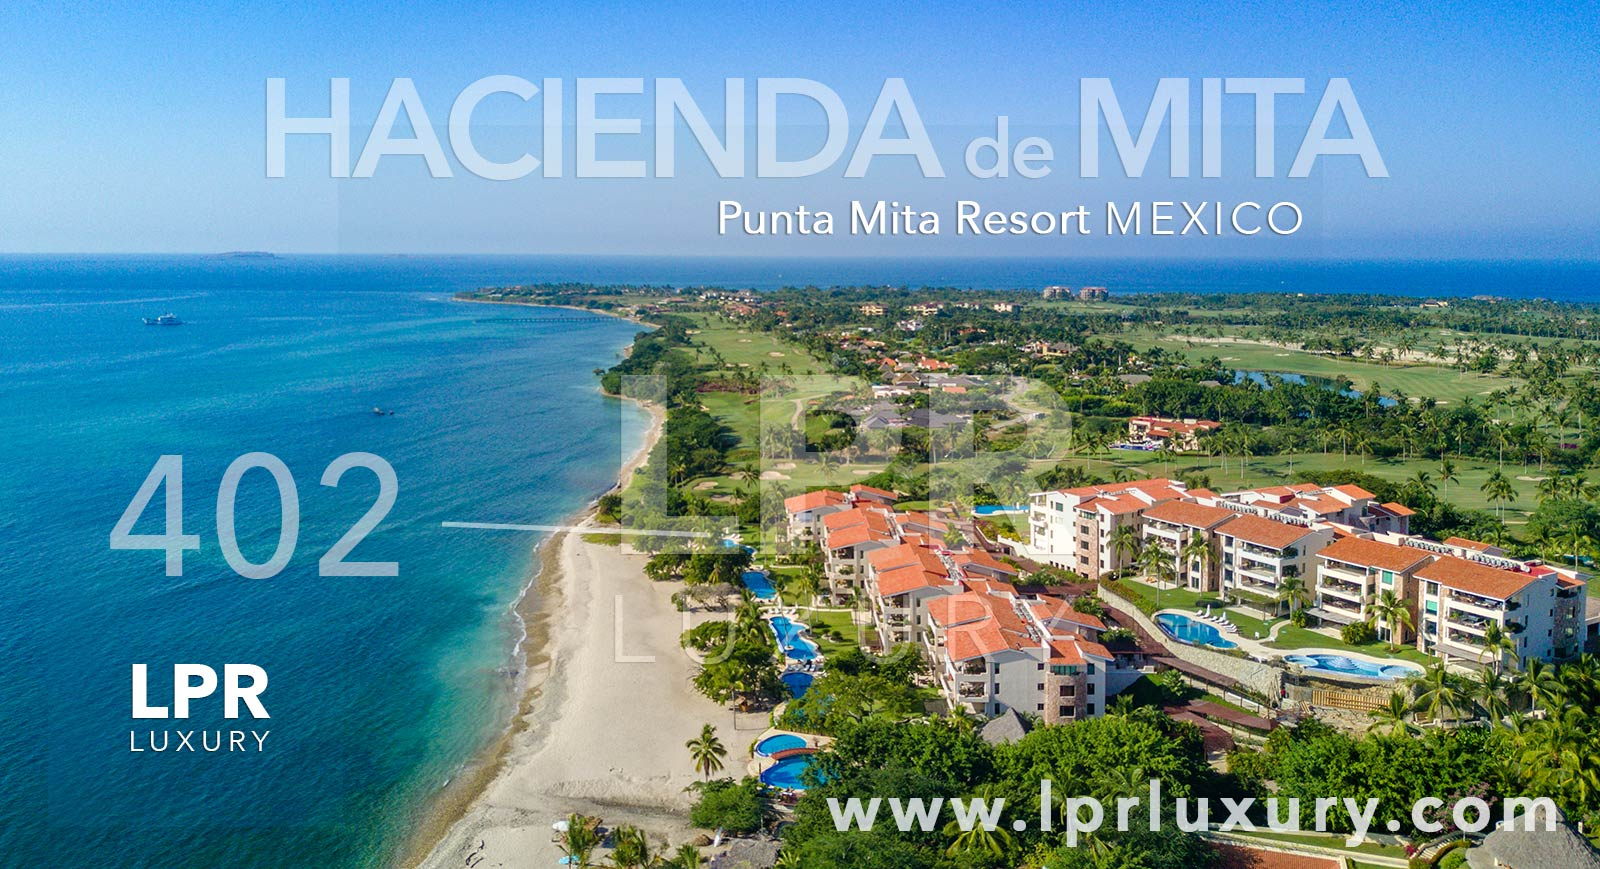 Hacienda de Mita 402 - Luxury Punta Mita Mexico condos for sale and rent